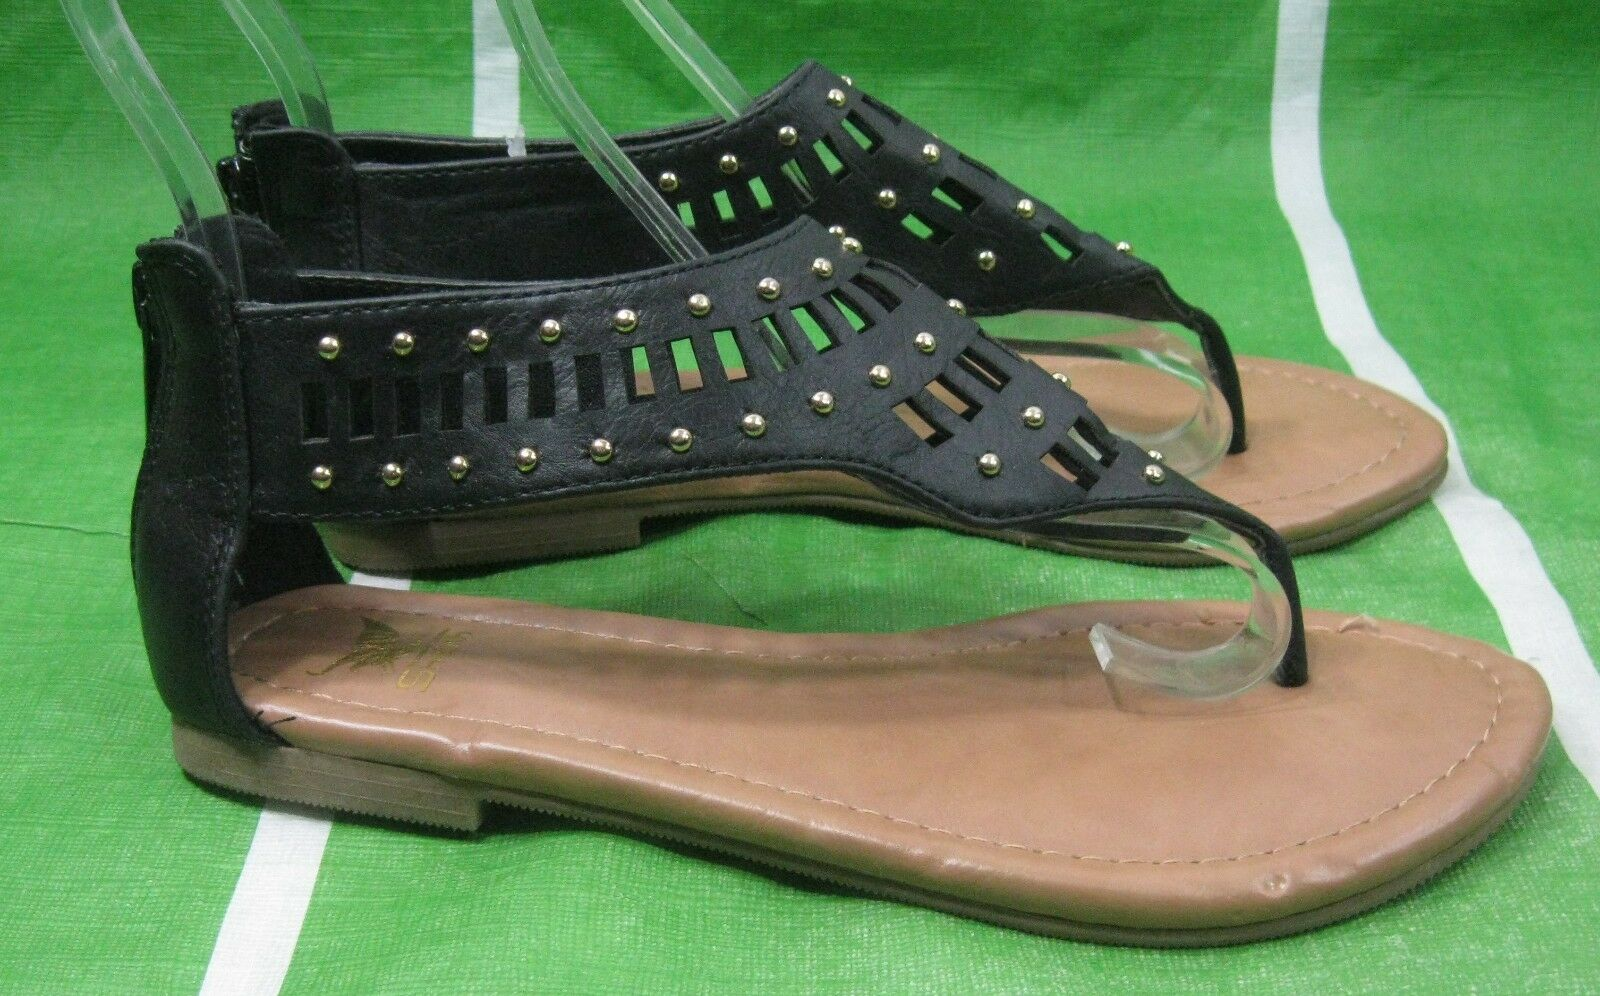 NEW LADIES Summer Shoes Womens Sandal Black/Gold Stud Sexy Shoes Summer Size 6.5 17cbc5